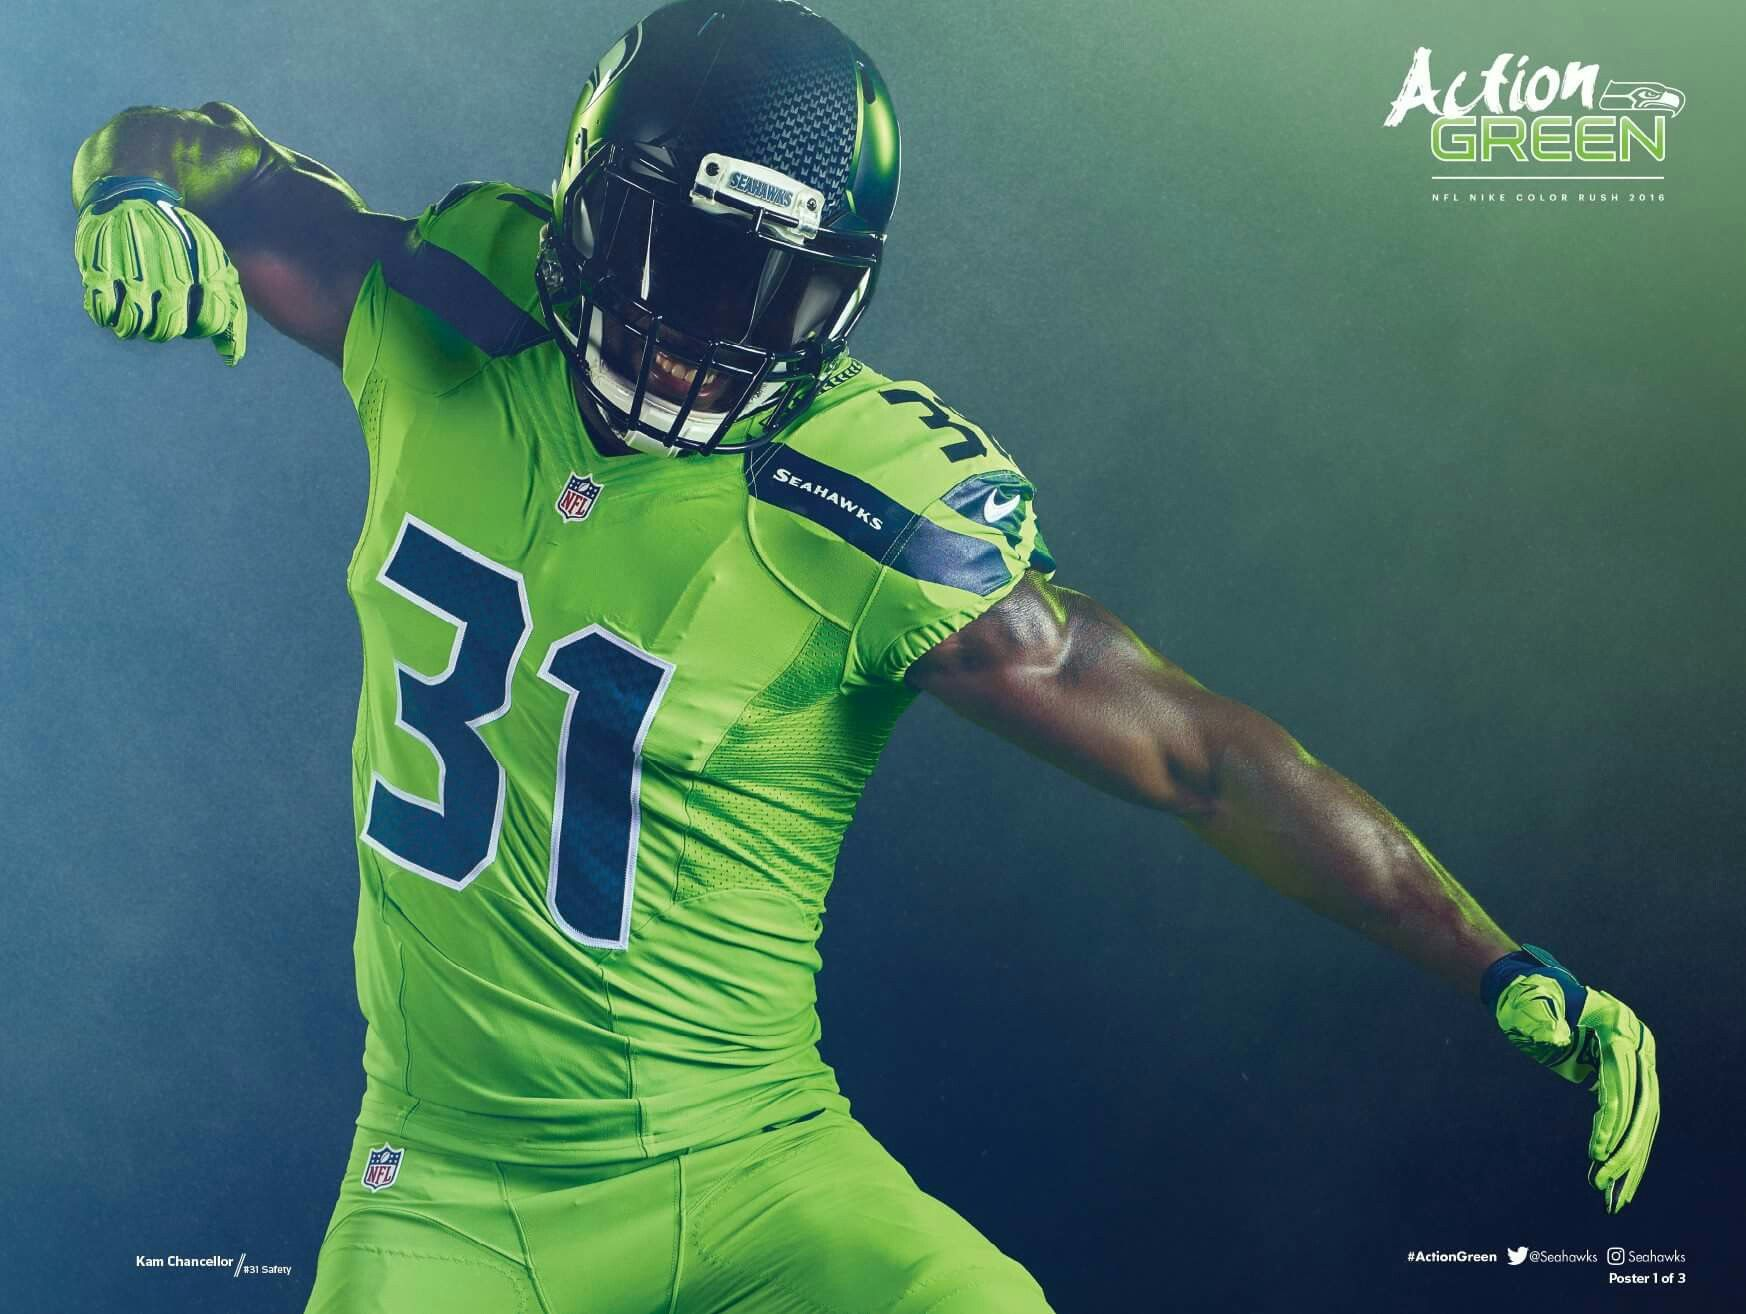 Action Green (With images) Seahawks color rush, Seahawks